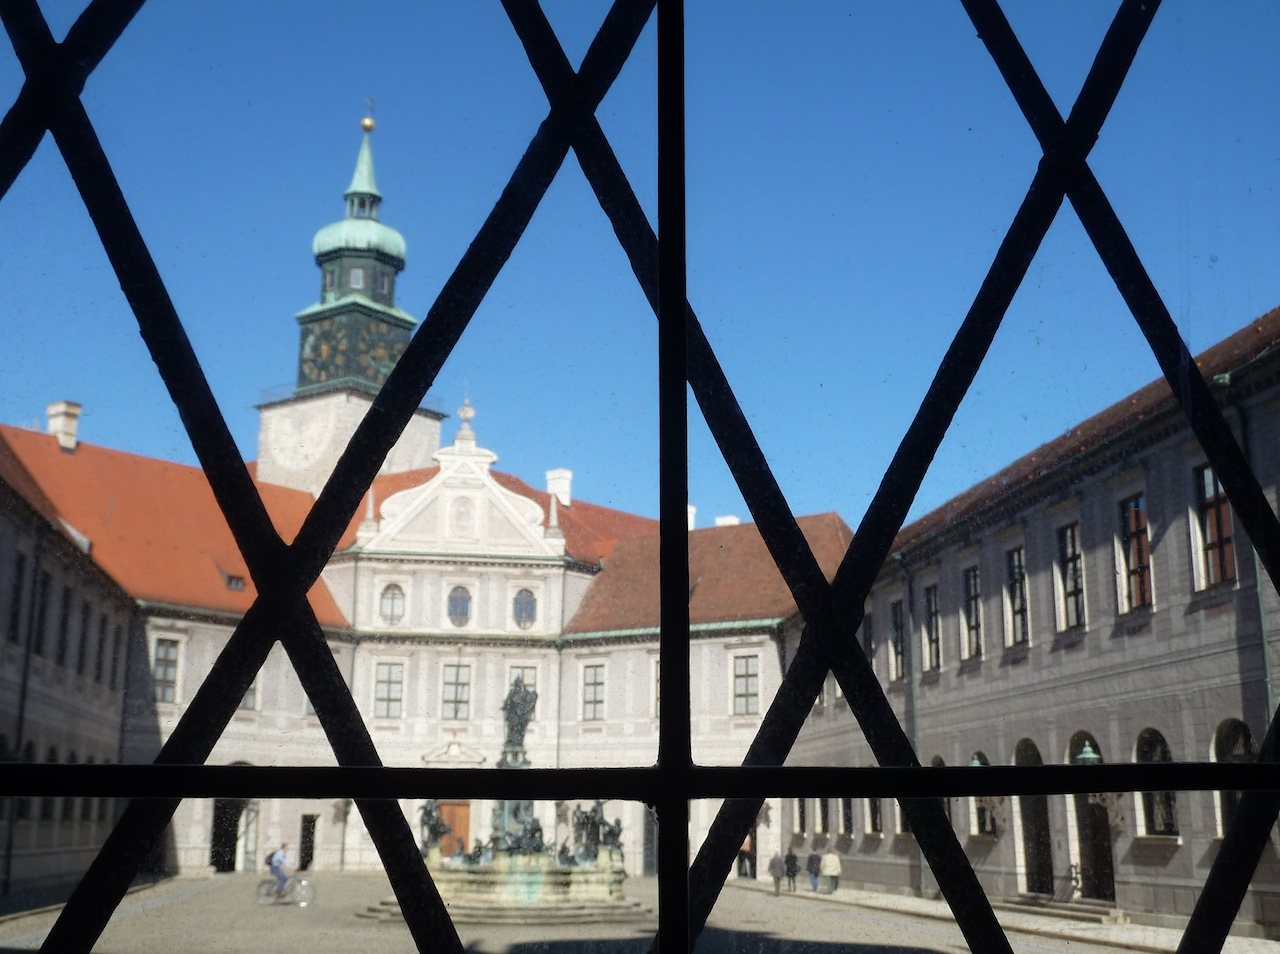 Munich: The Spirit of Bavaria